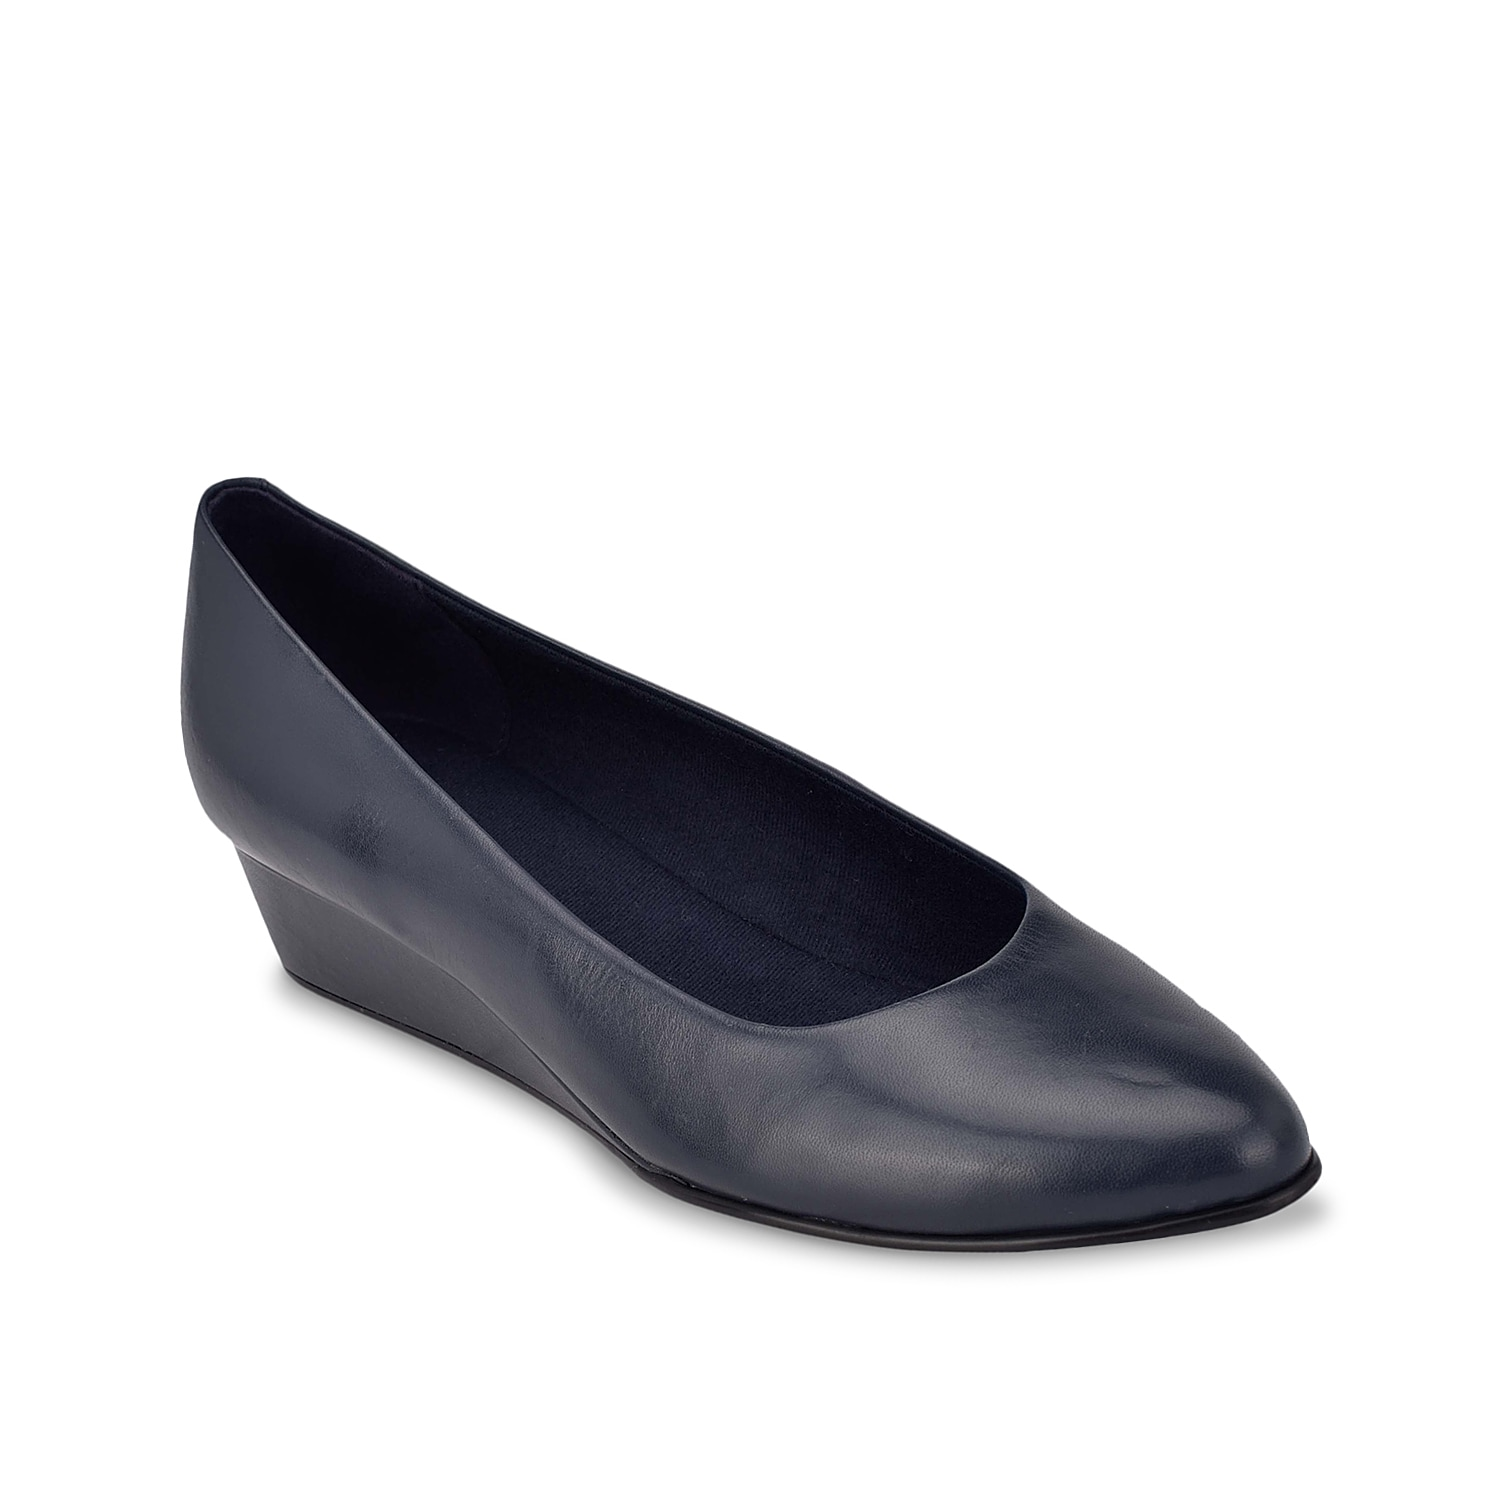 Boosted up by an ever-so-slight wedge for just a little extra lift, the Abelle pumps from Easy Spirit feature a flexible and durable outsole for walking comfort. Ultra-light materials keep this pair effortless.